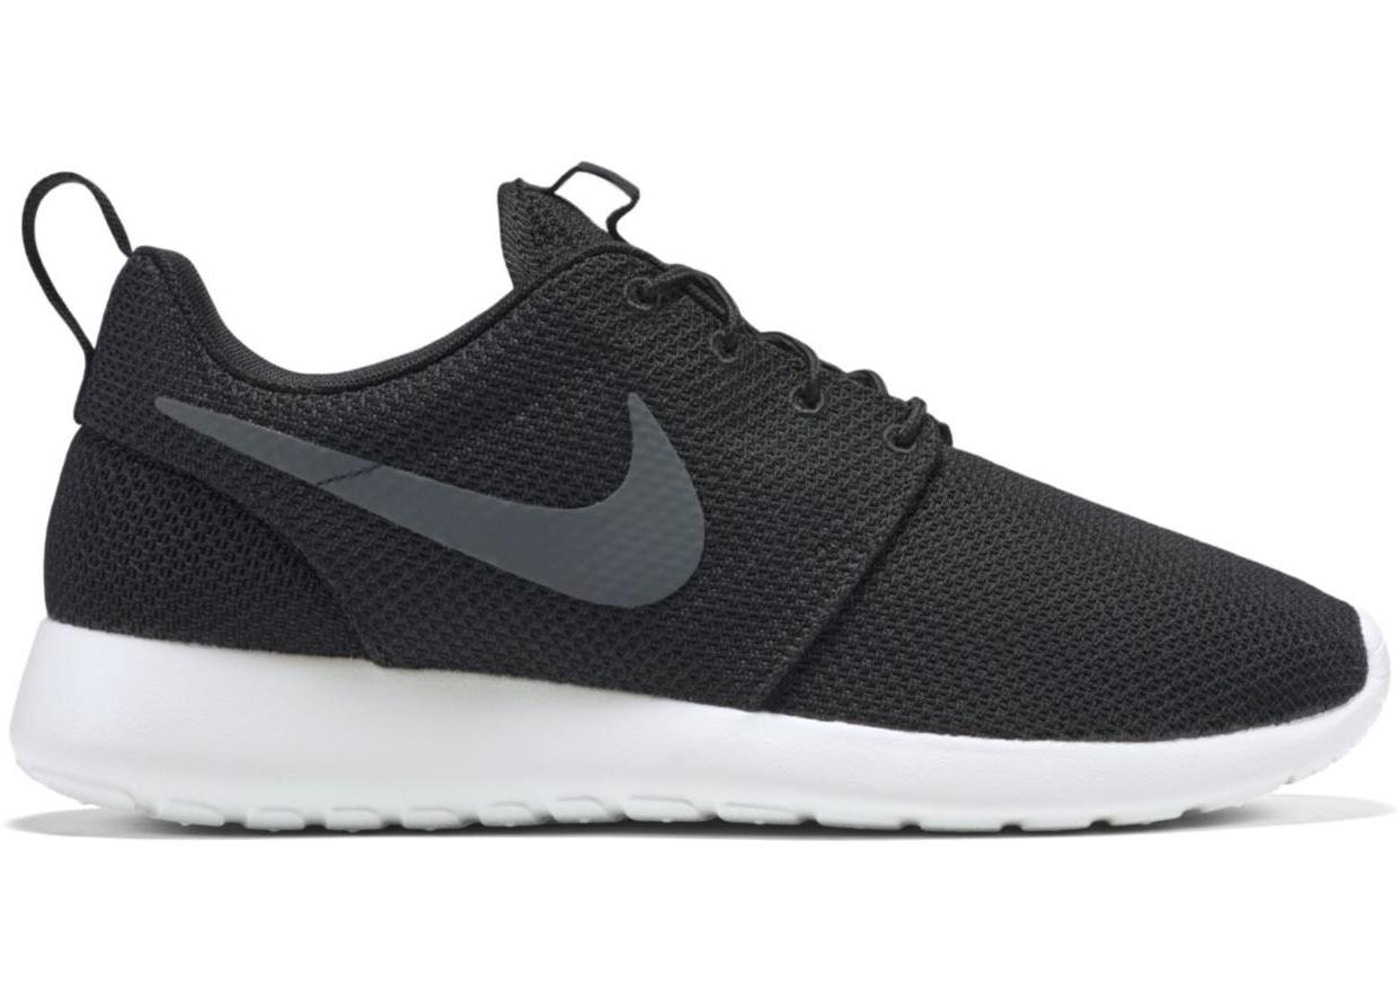 Black Roshe Run Shoes